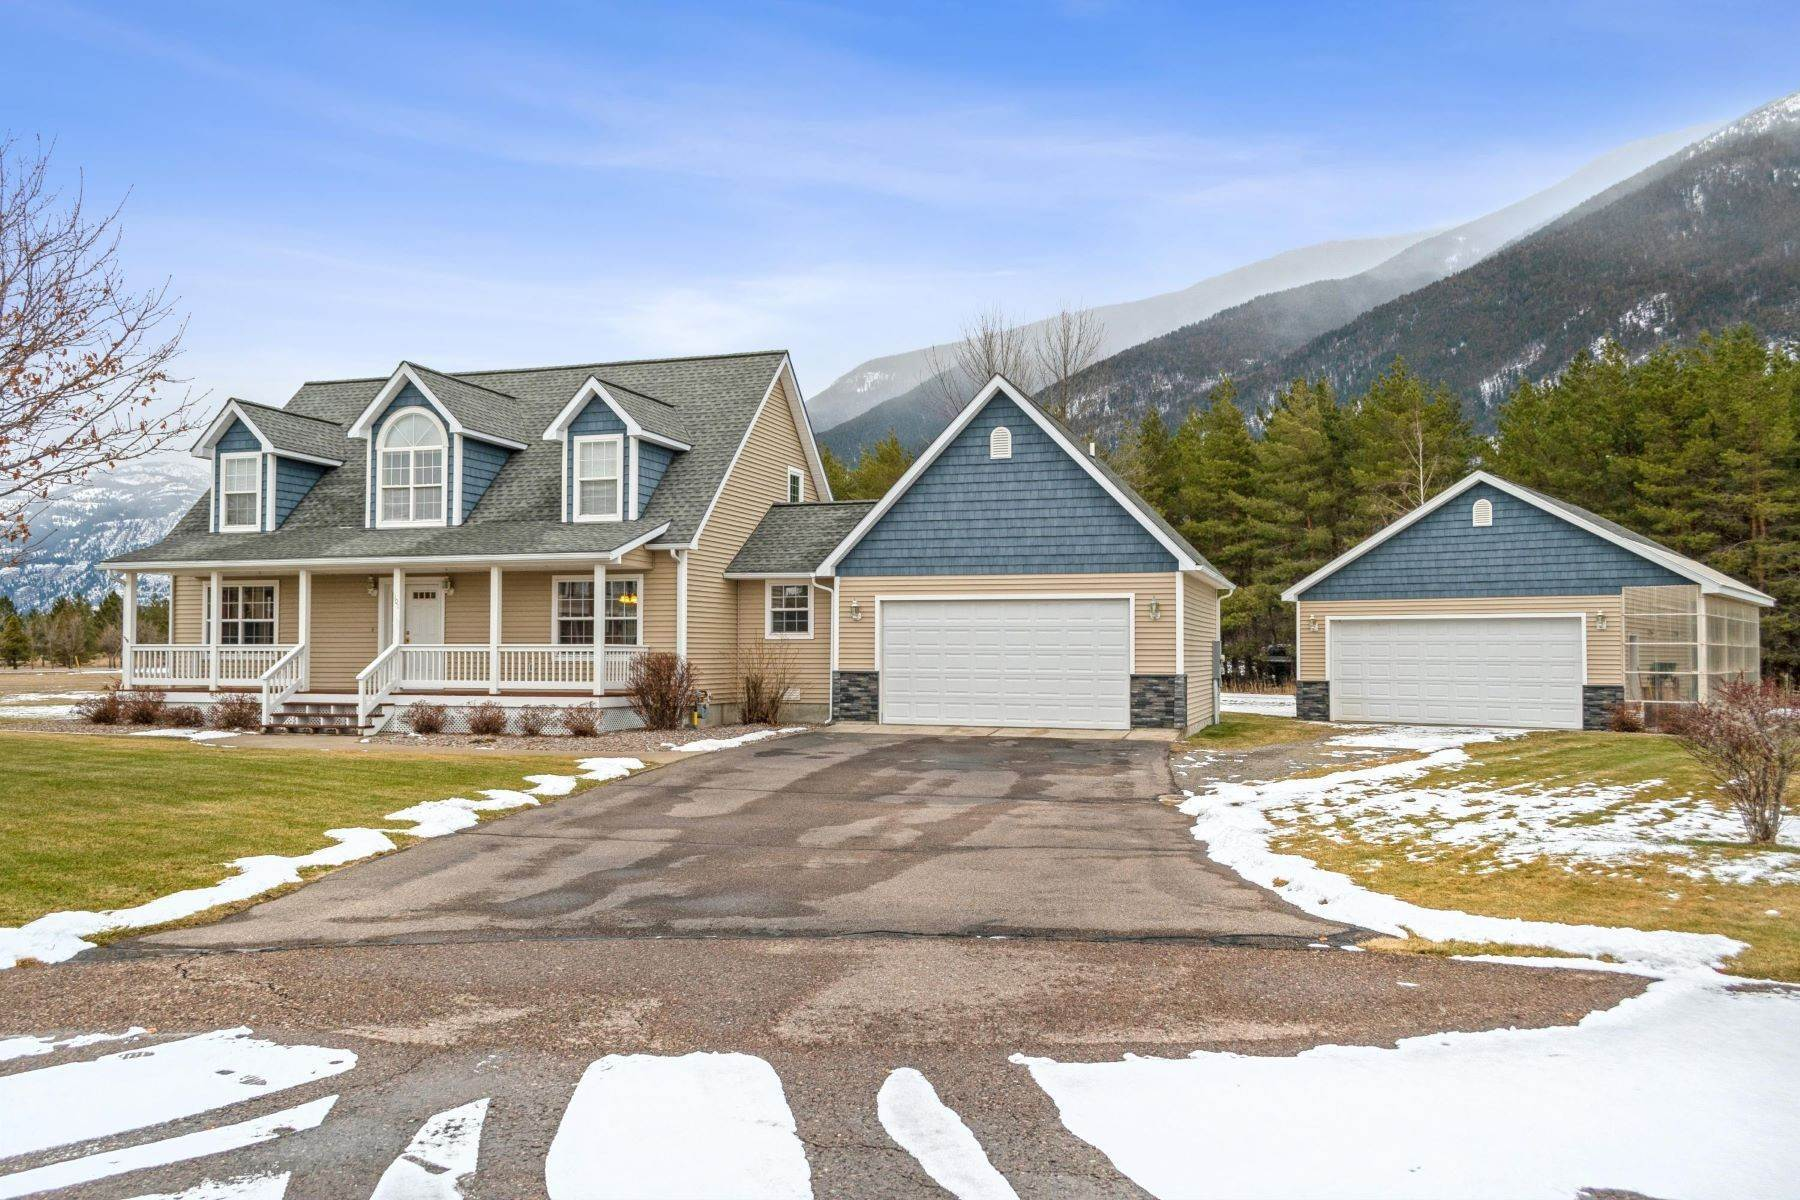 Property for Sale at Spacious Family Home with Mountain Views 101 Eastway Drive Columbia Falls, Montana 59912 United States